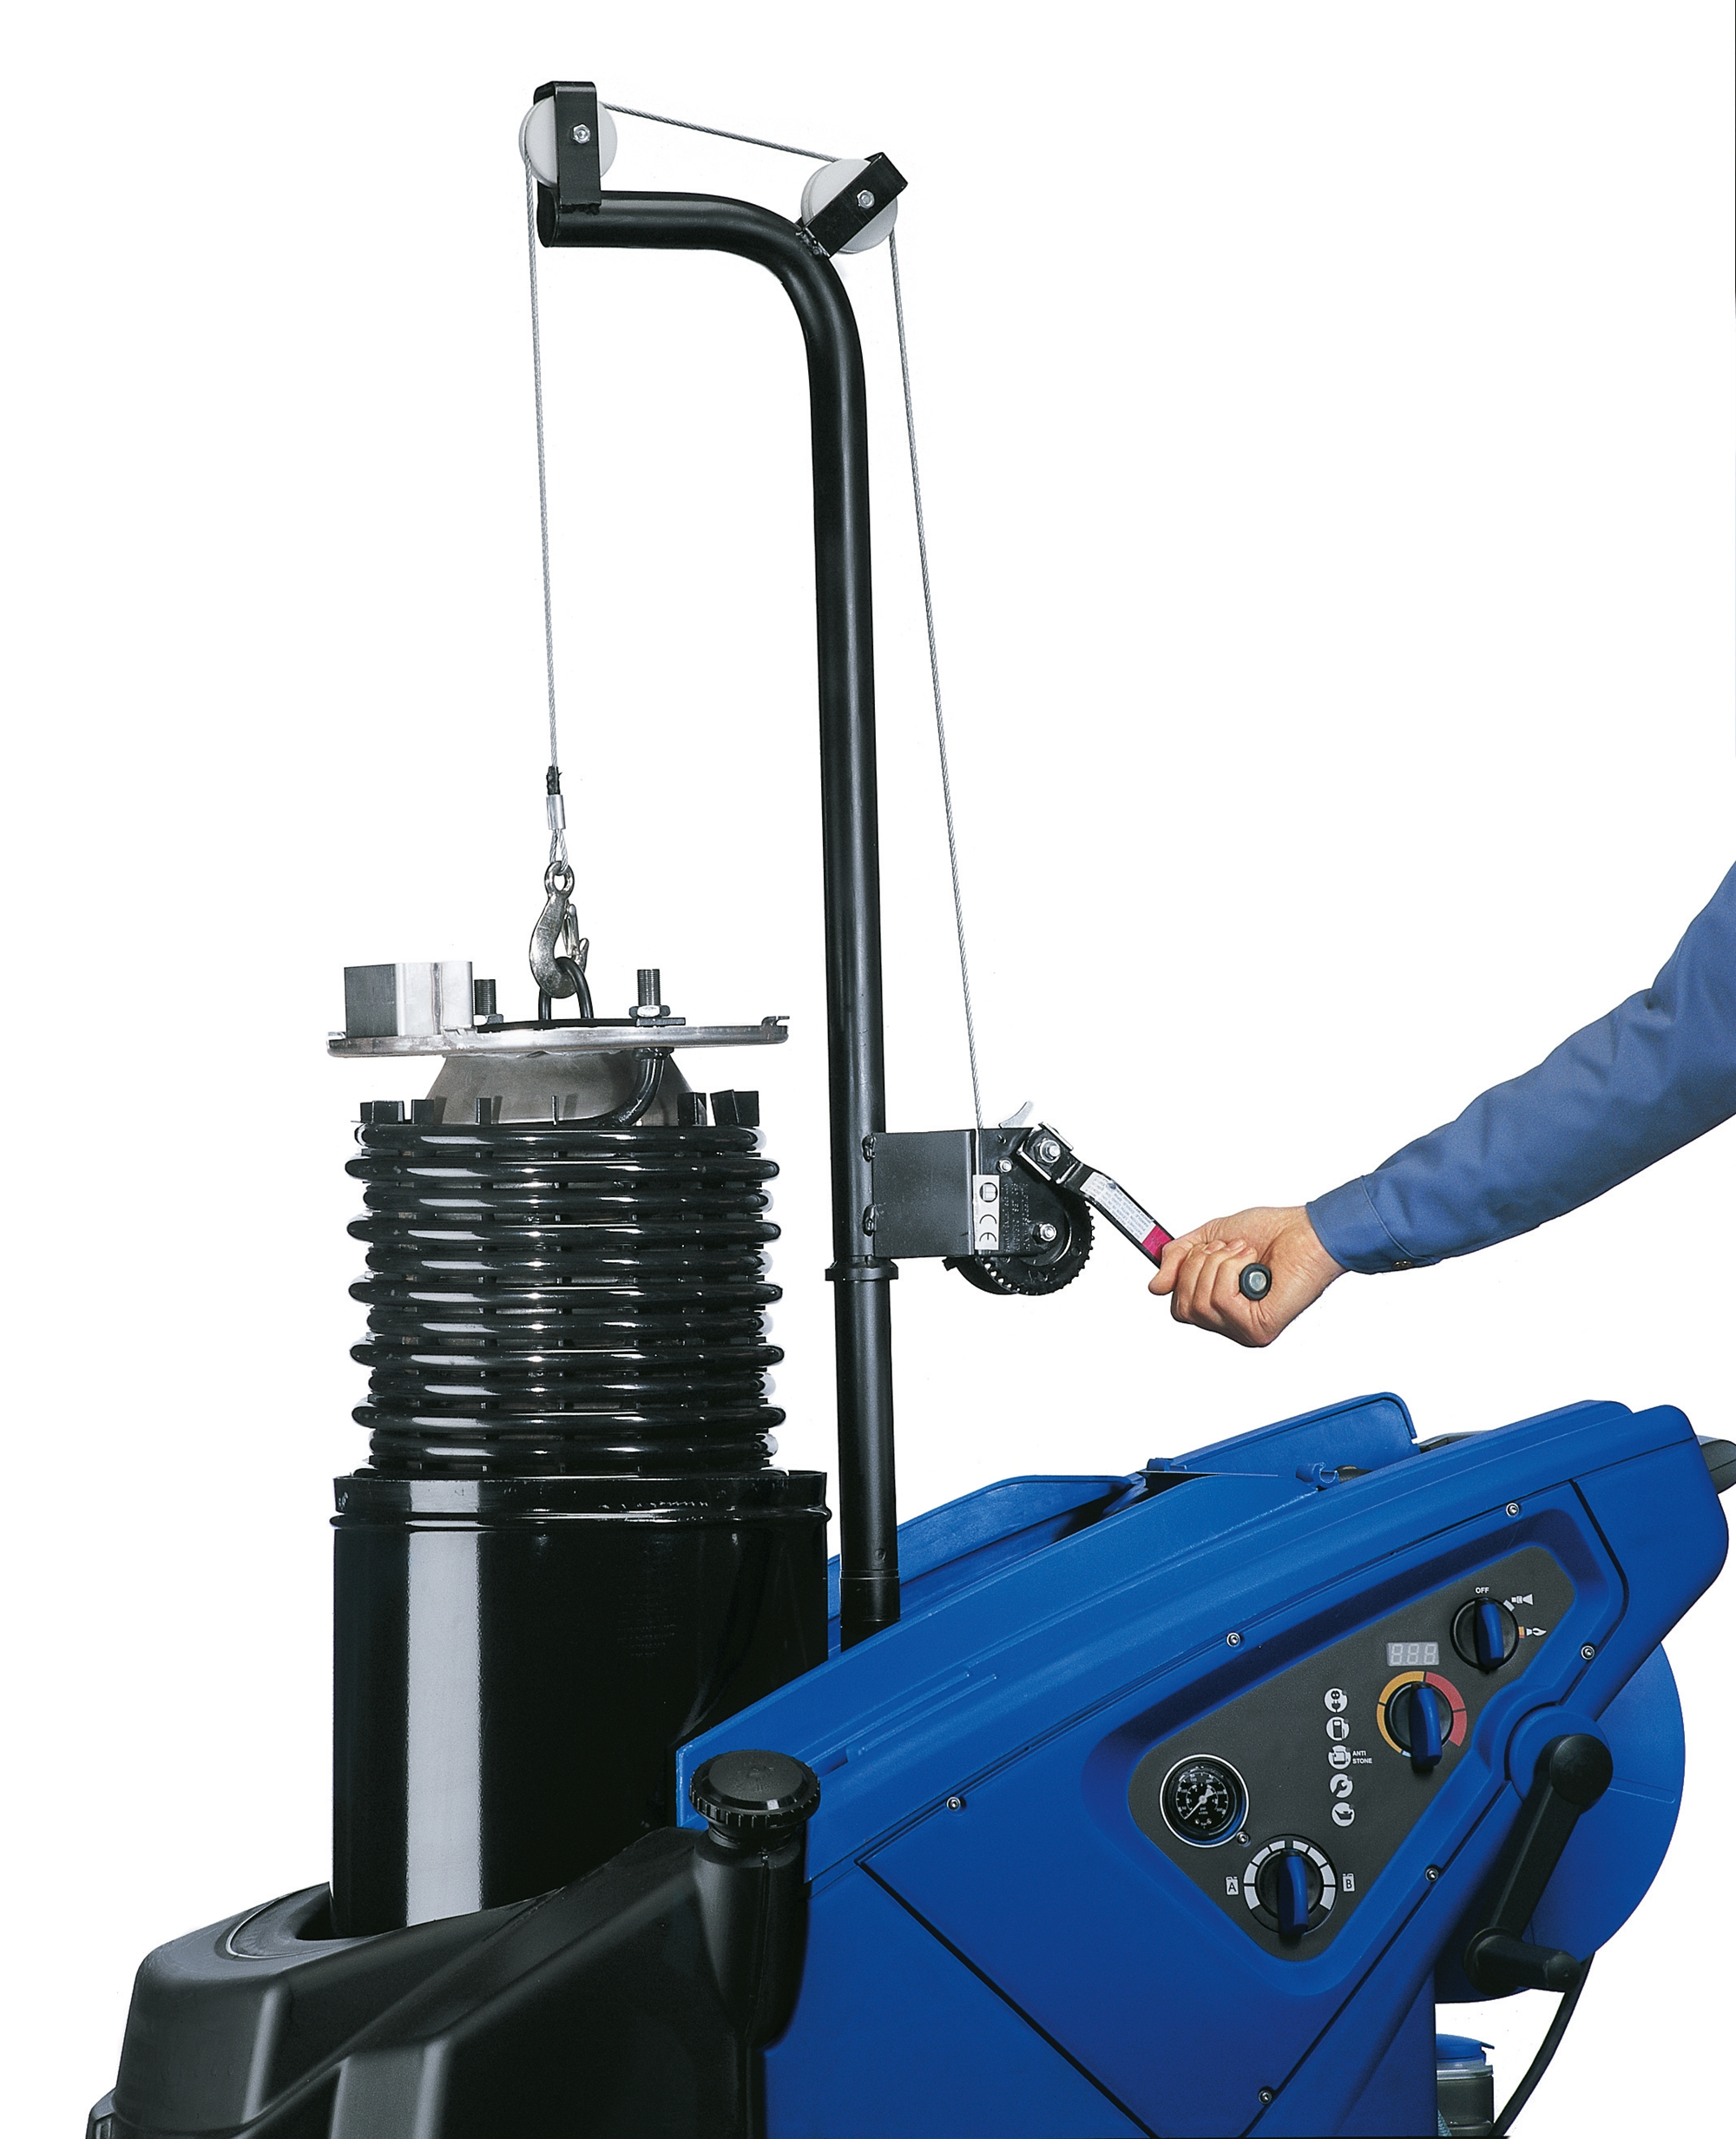 Product, Pressure Cleaners, Mobile pressure cleaners, Mobile hot water pressure washers, Premium, Nilfisk, MH 8P-180/2000